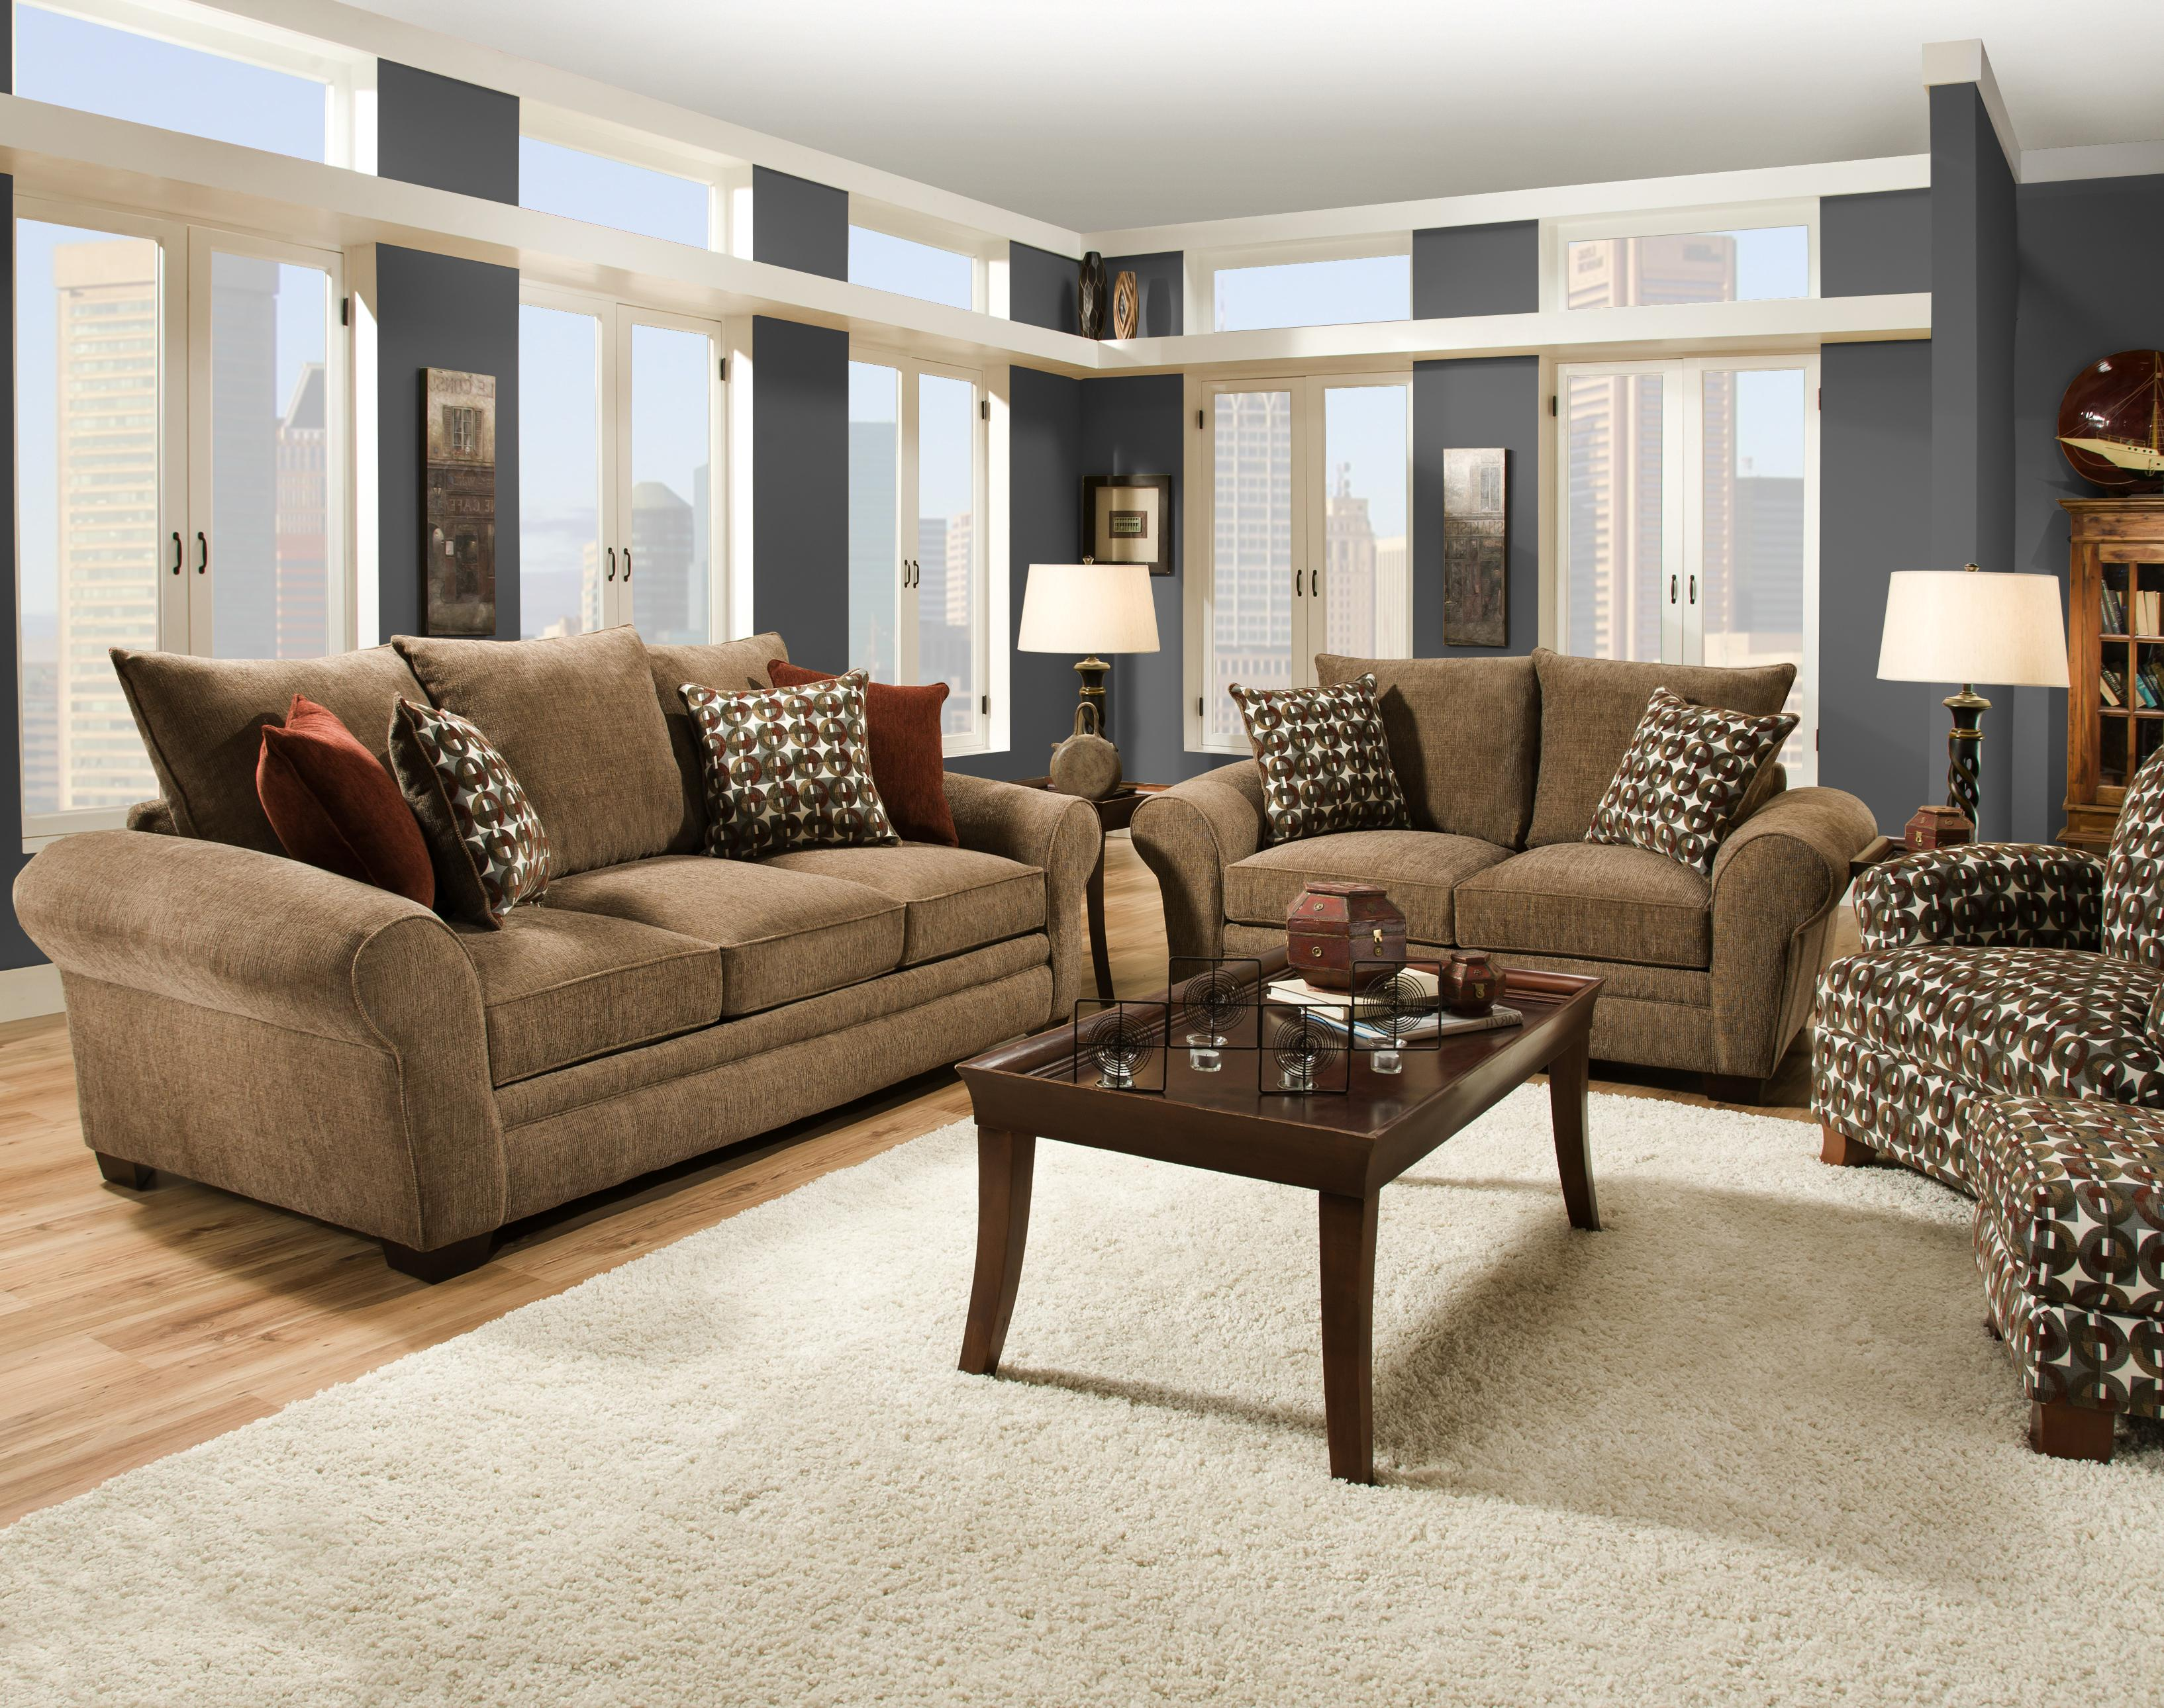 Comfortable Chairs For Family Room Part - 40: Traditional Styled Loveseat With Comfortable Look For Casual Family Living